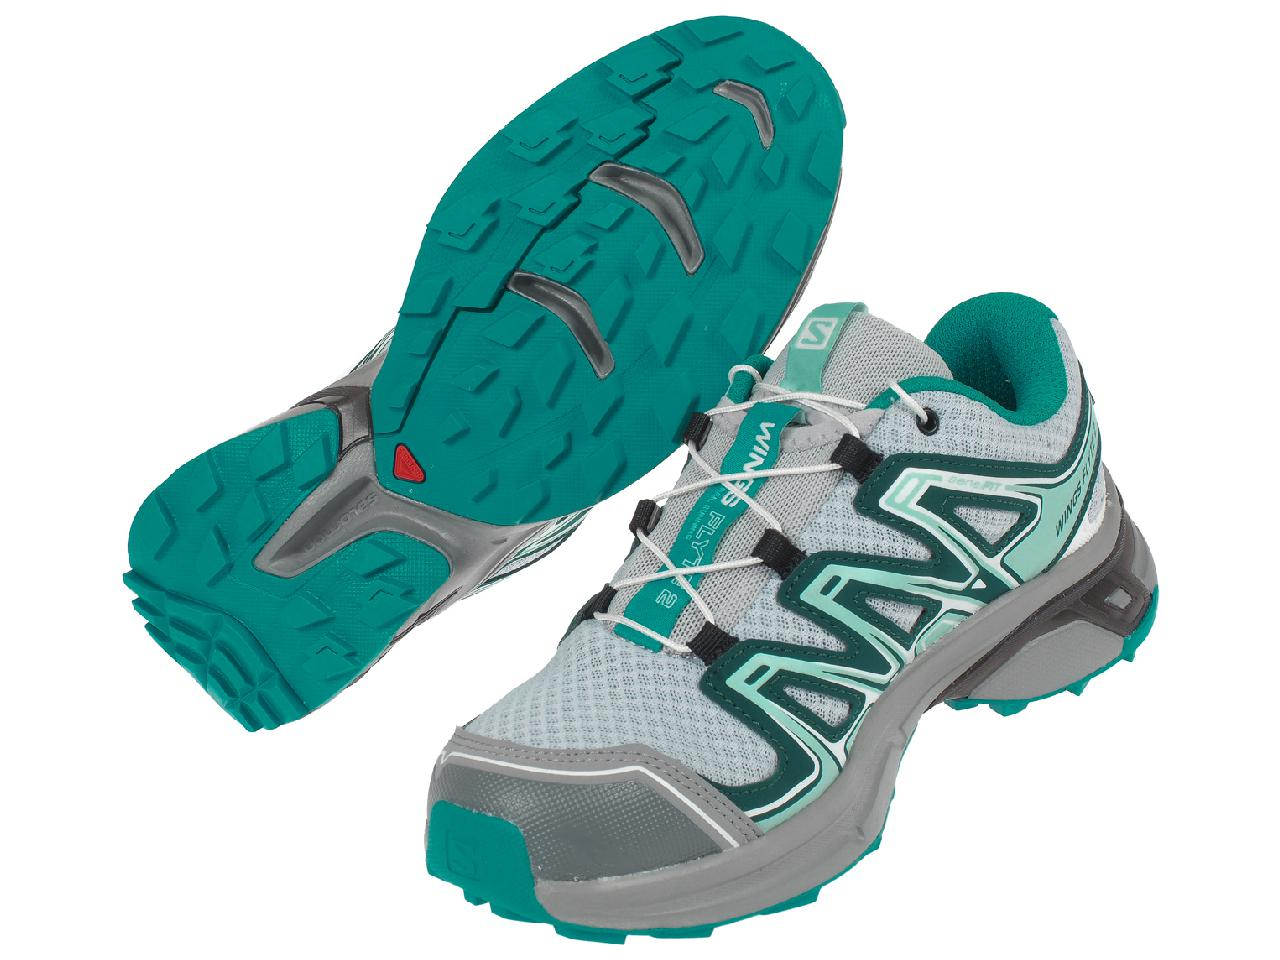 Chaussures-running-trail-Salomon-Wings-flyte-2-grs-trail-l-Gris-58840-Neuf